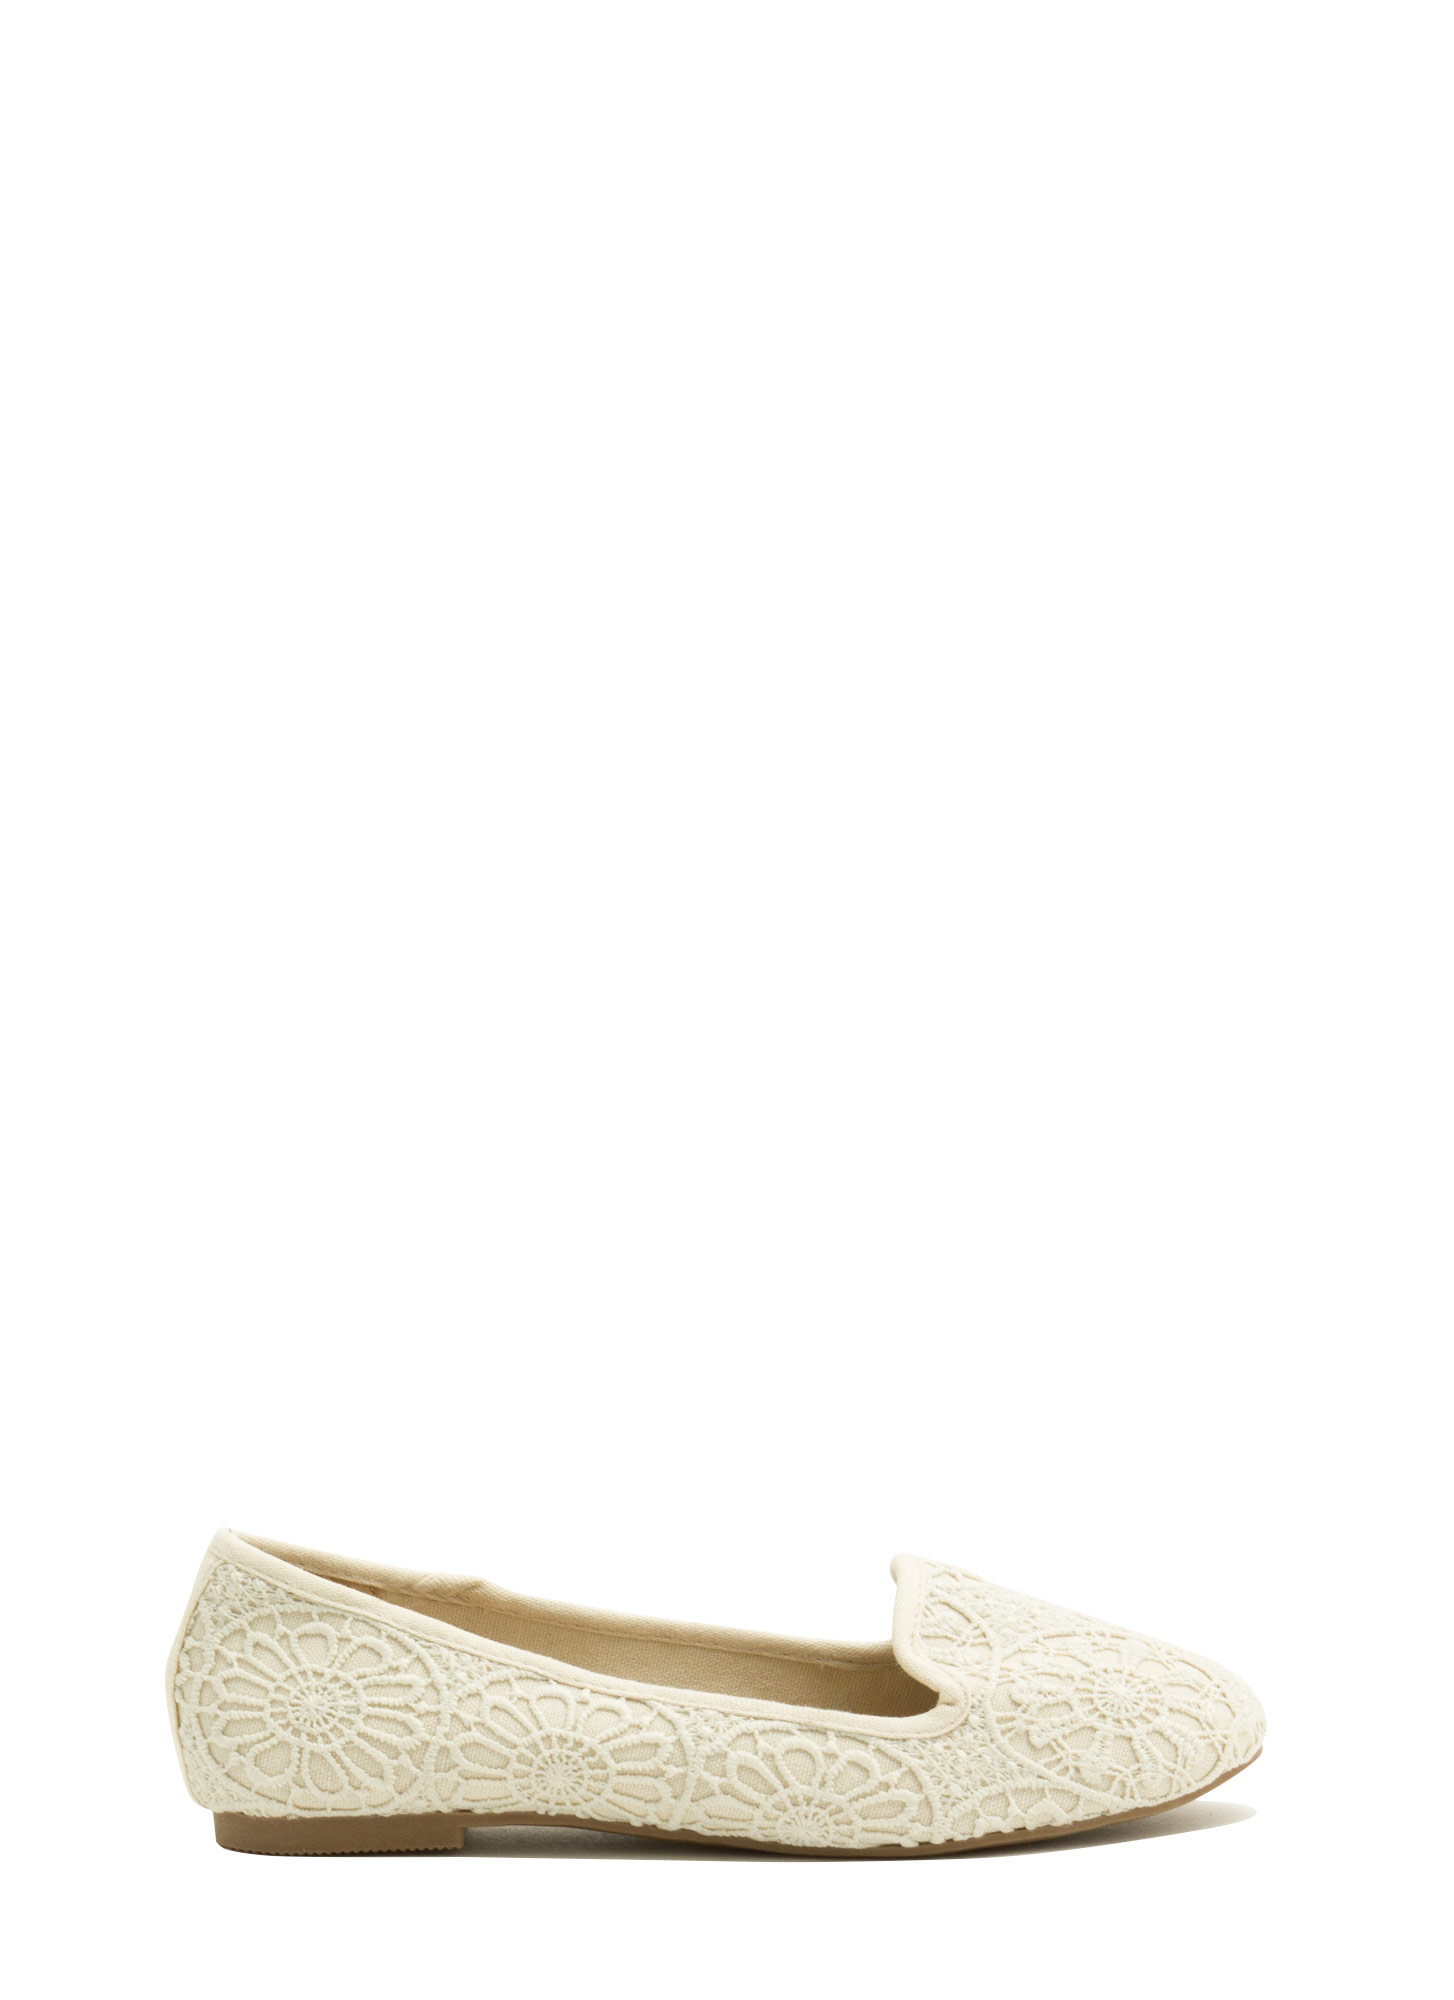 Medallion Crochet Smoking Flats BEIGE